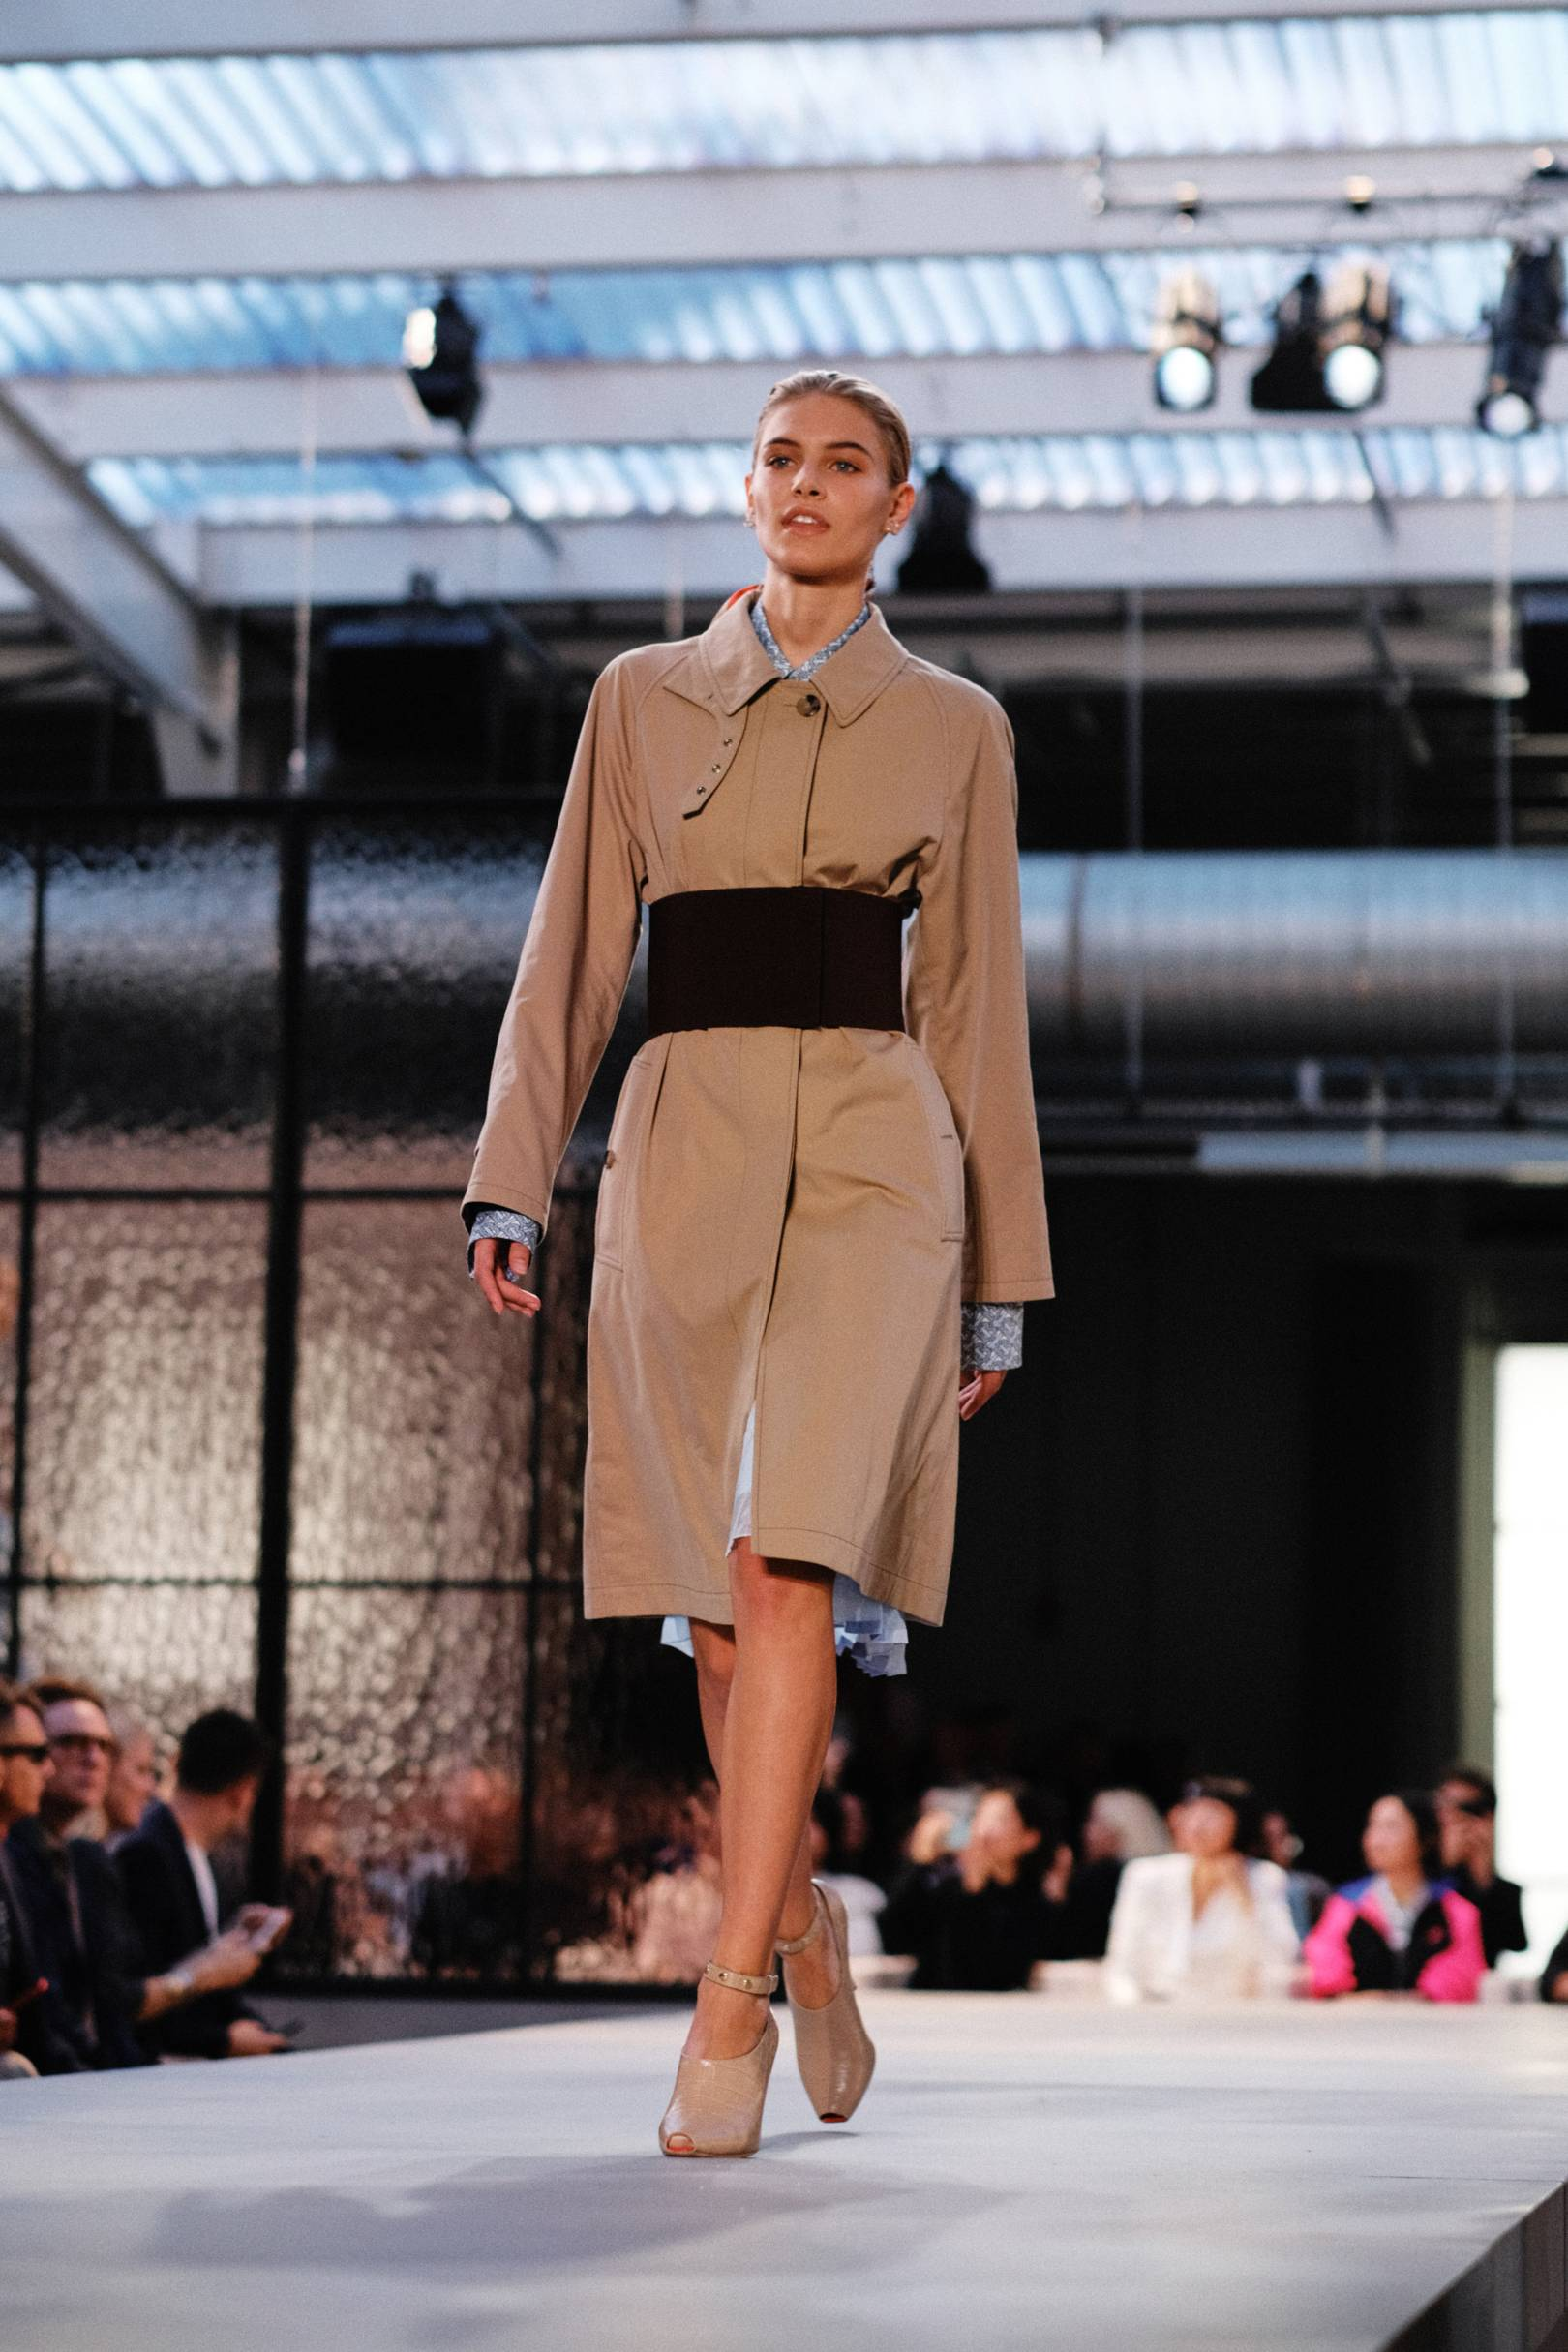 e75f66ee184a 5 Things To Know About Riccardo Tisci s Debut Burberry Collection ...